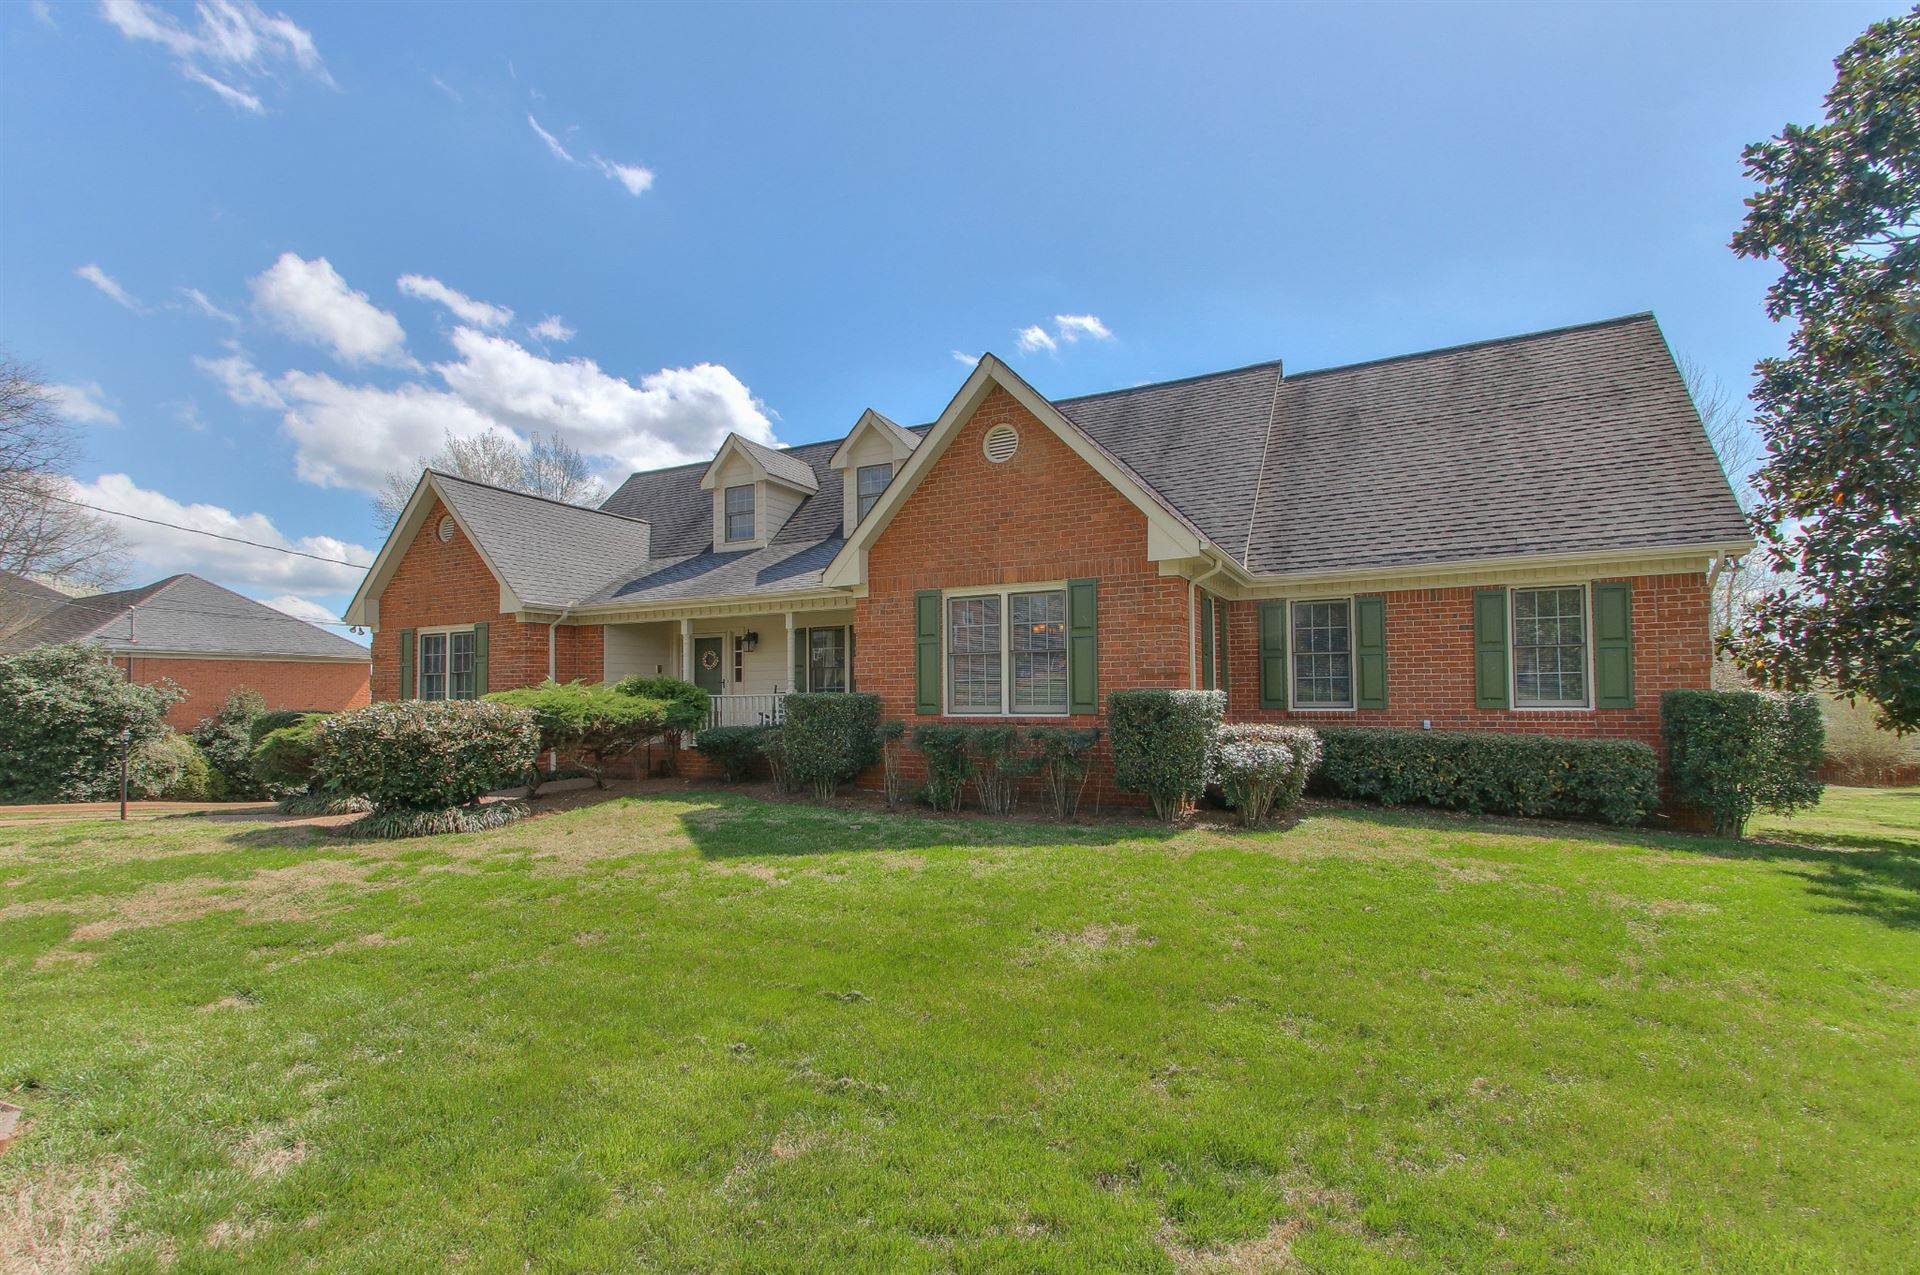 1036 Stirlingshire Dr, Hendersonville, TN 37075 - MLS#: 2237898